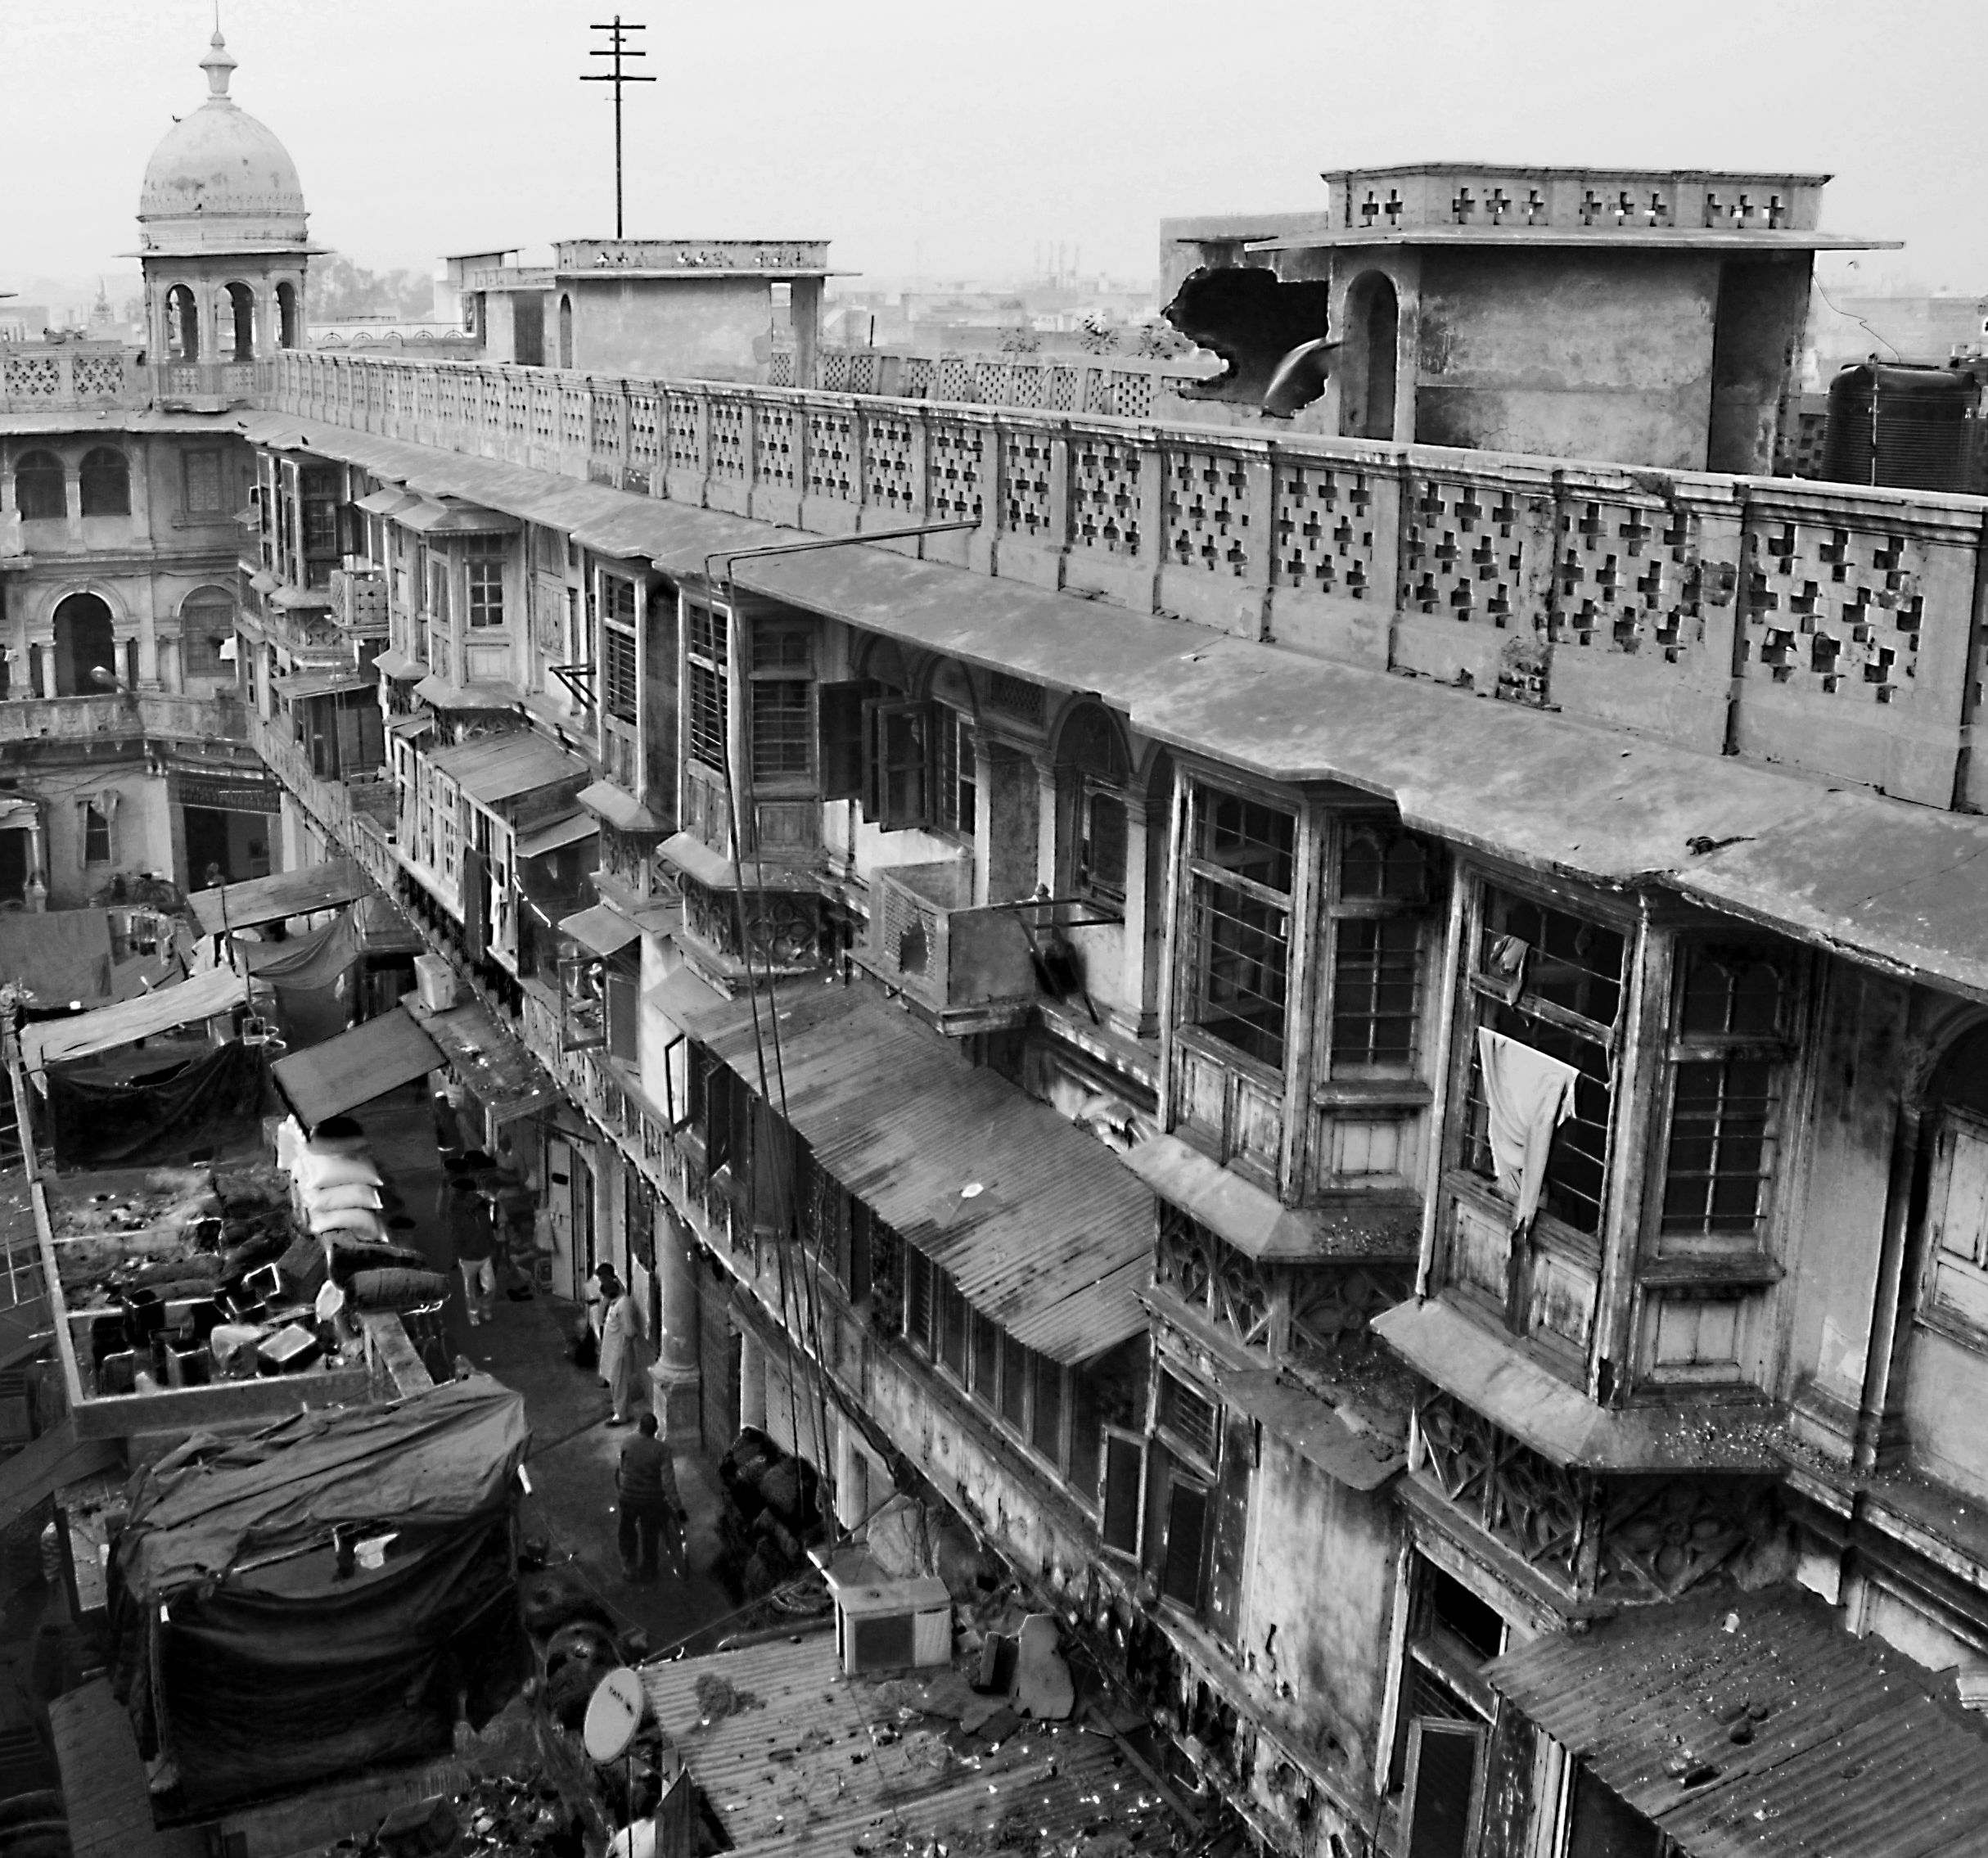 Spice Market In Old Delhi India Travel Photography Photo Black White Photos